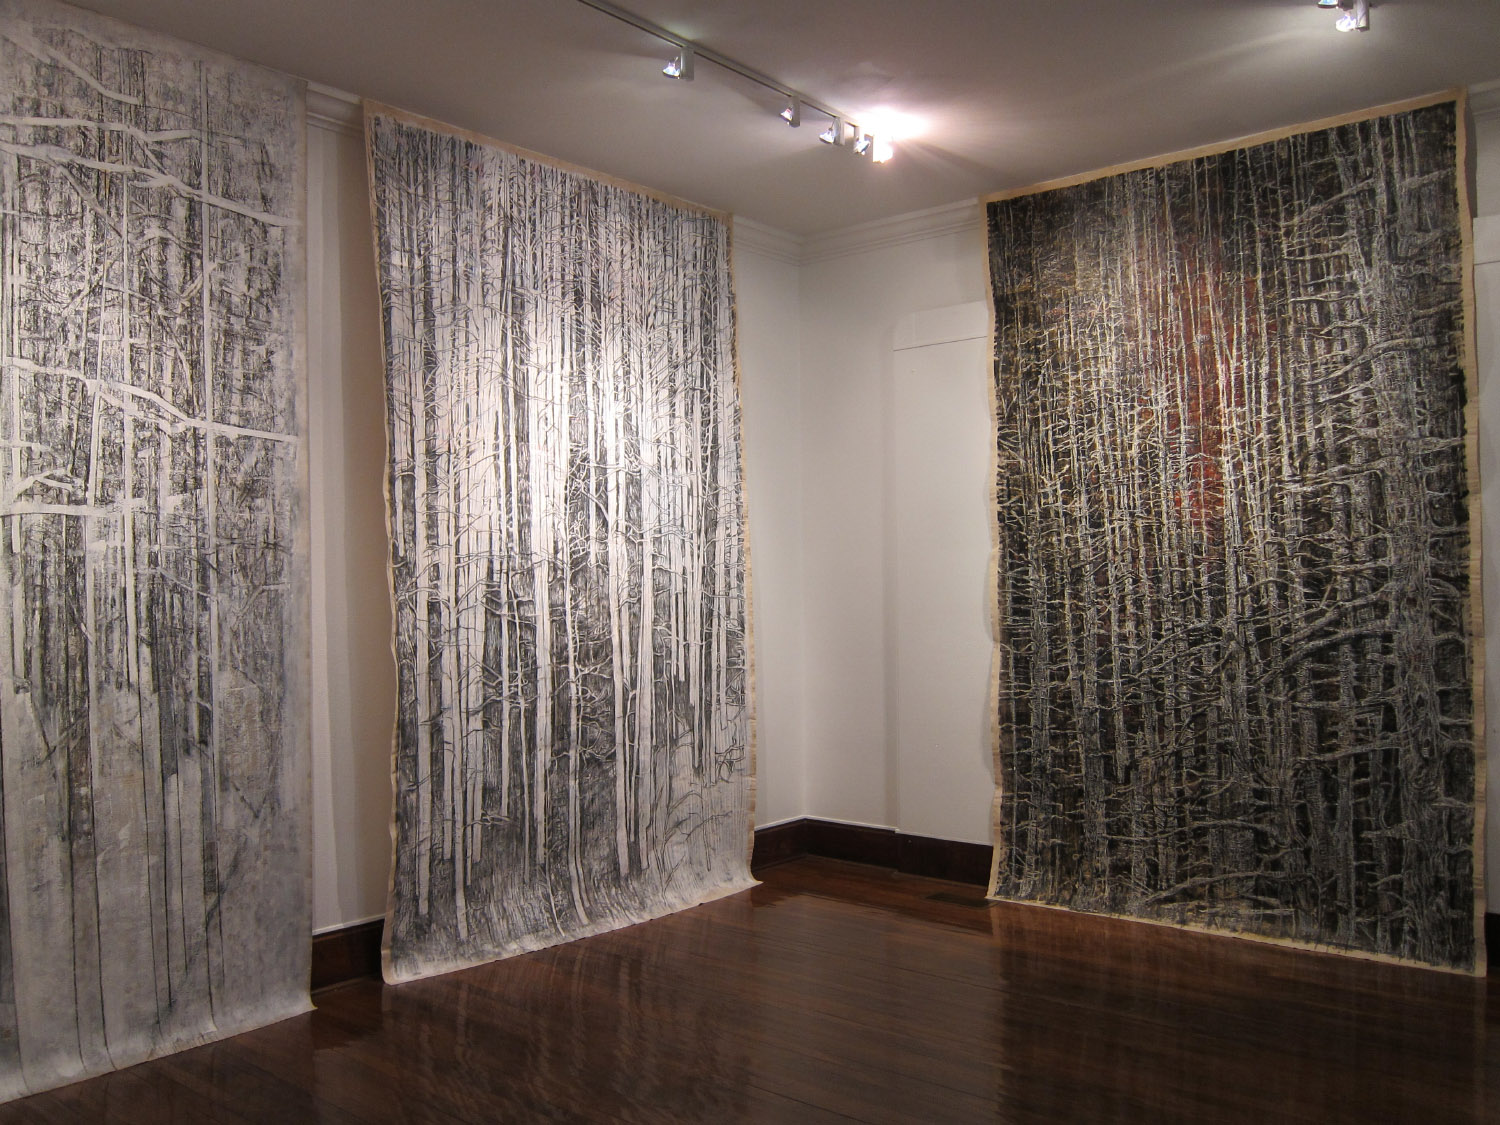 2ag(4)-Whiteout, Curtains, Snags, Curtains - each  133x83 in. mm on canvas- 2010, Beeville Art Museum.JPG